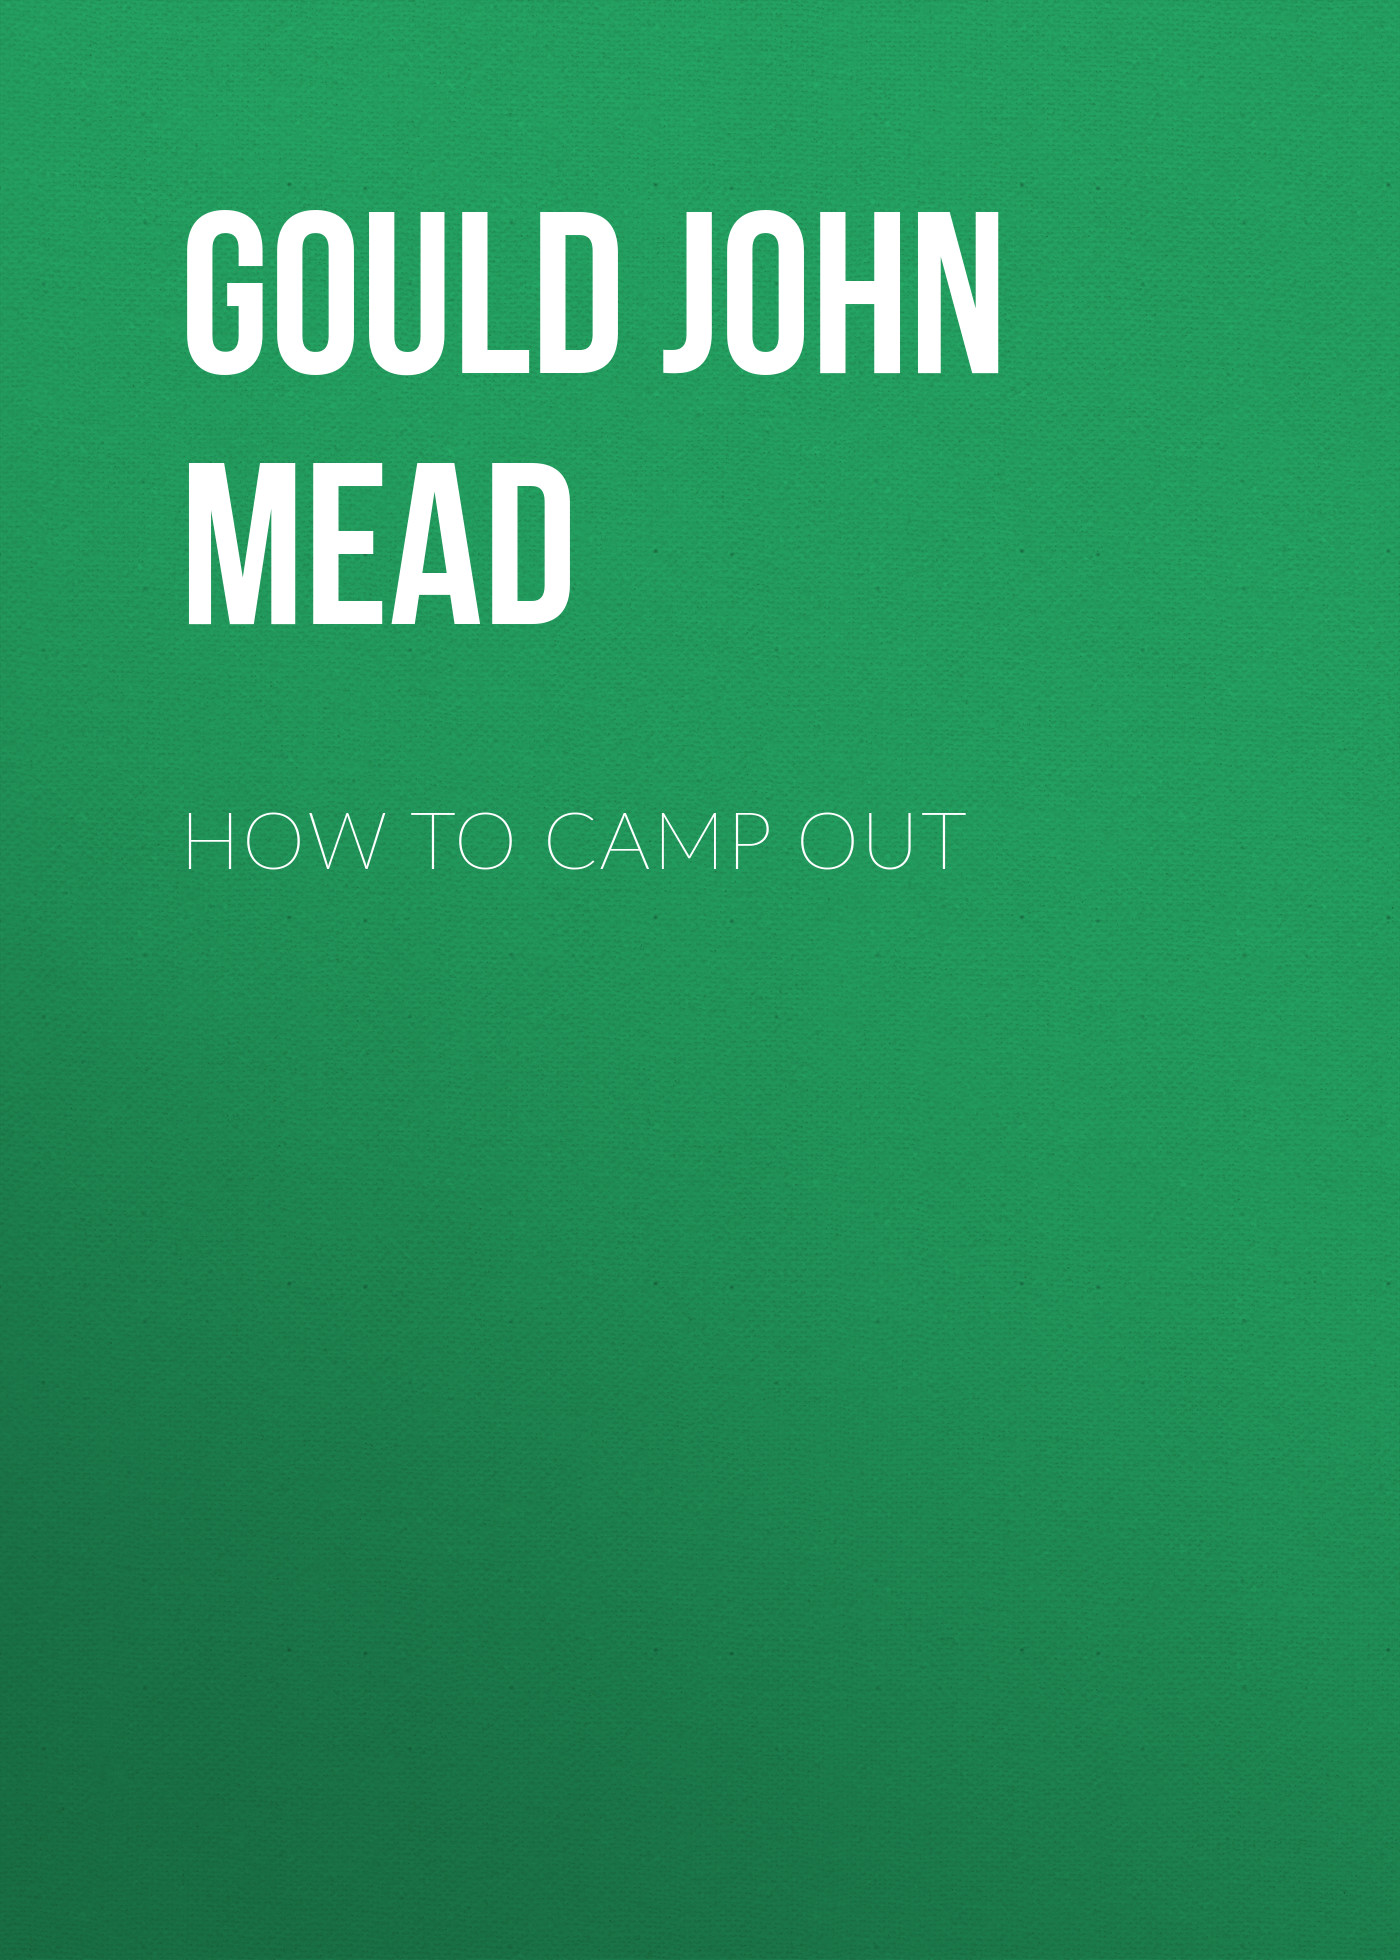 Gould John Mead How to Camp Out how to survive summer camp